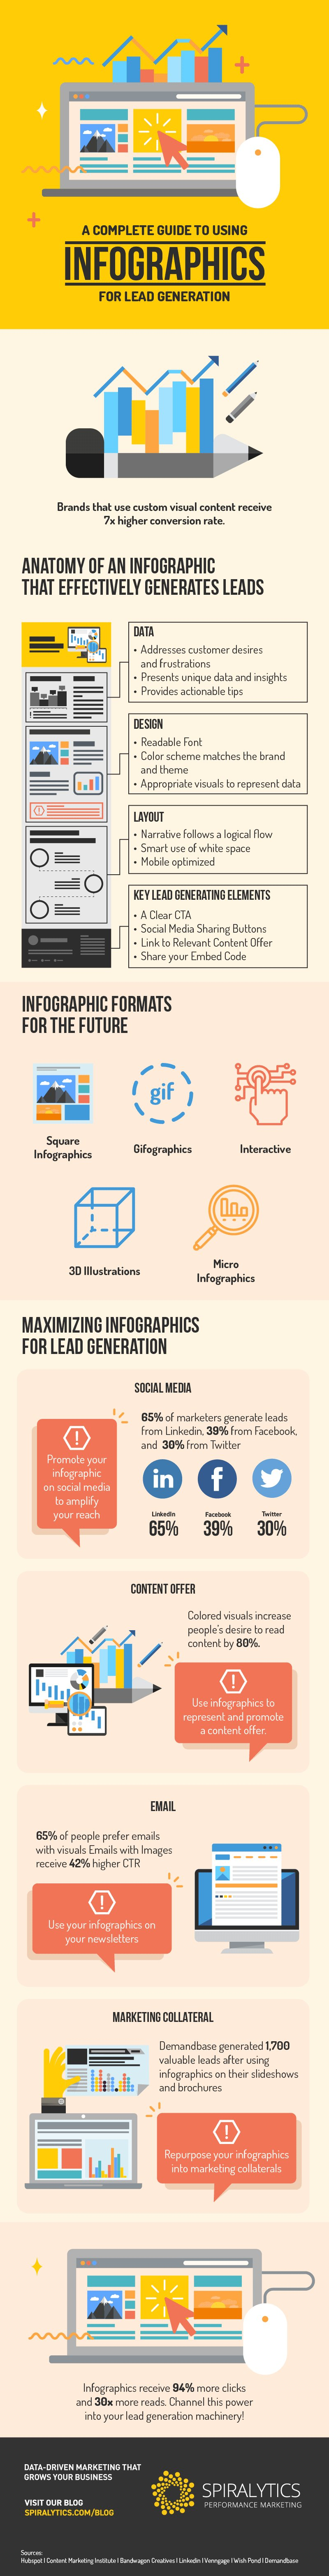 A Complete Guide to Using Infographics for Lead Generation